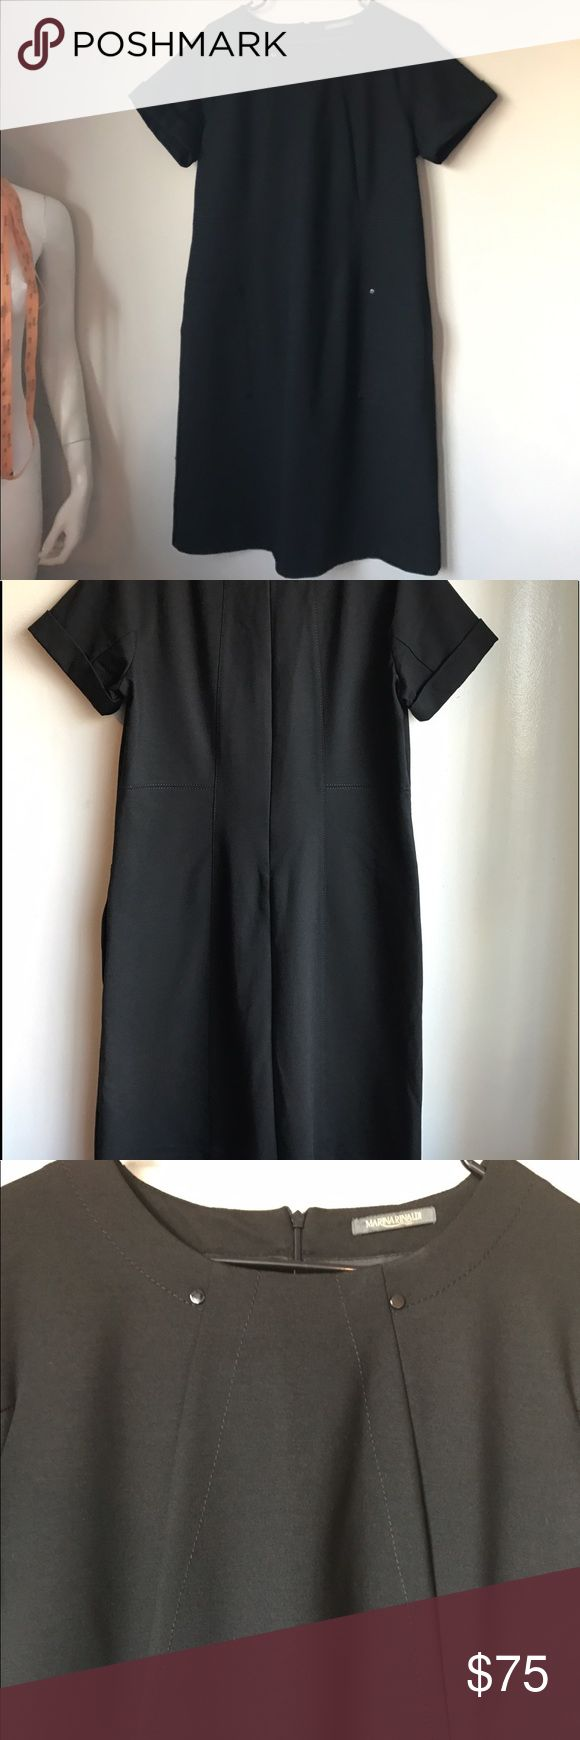 Original Marina Rinaldi  black dress WITH POCKETS! This brilliant dress is in perfect condition and has been worn maybe ONE time. The size on the tag says medium and fits very true to size. Feel free to message me for exact measurements.  :) Marina Rinaldi Dresses Midi